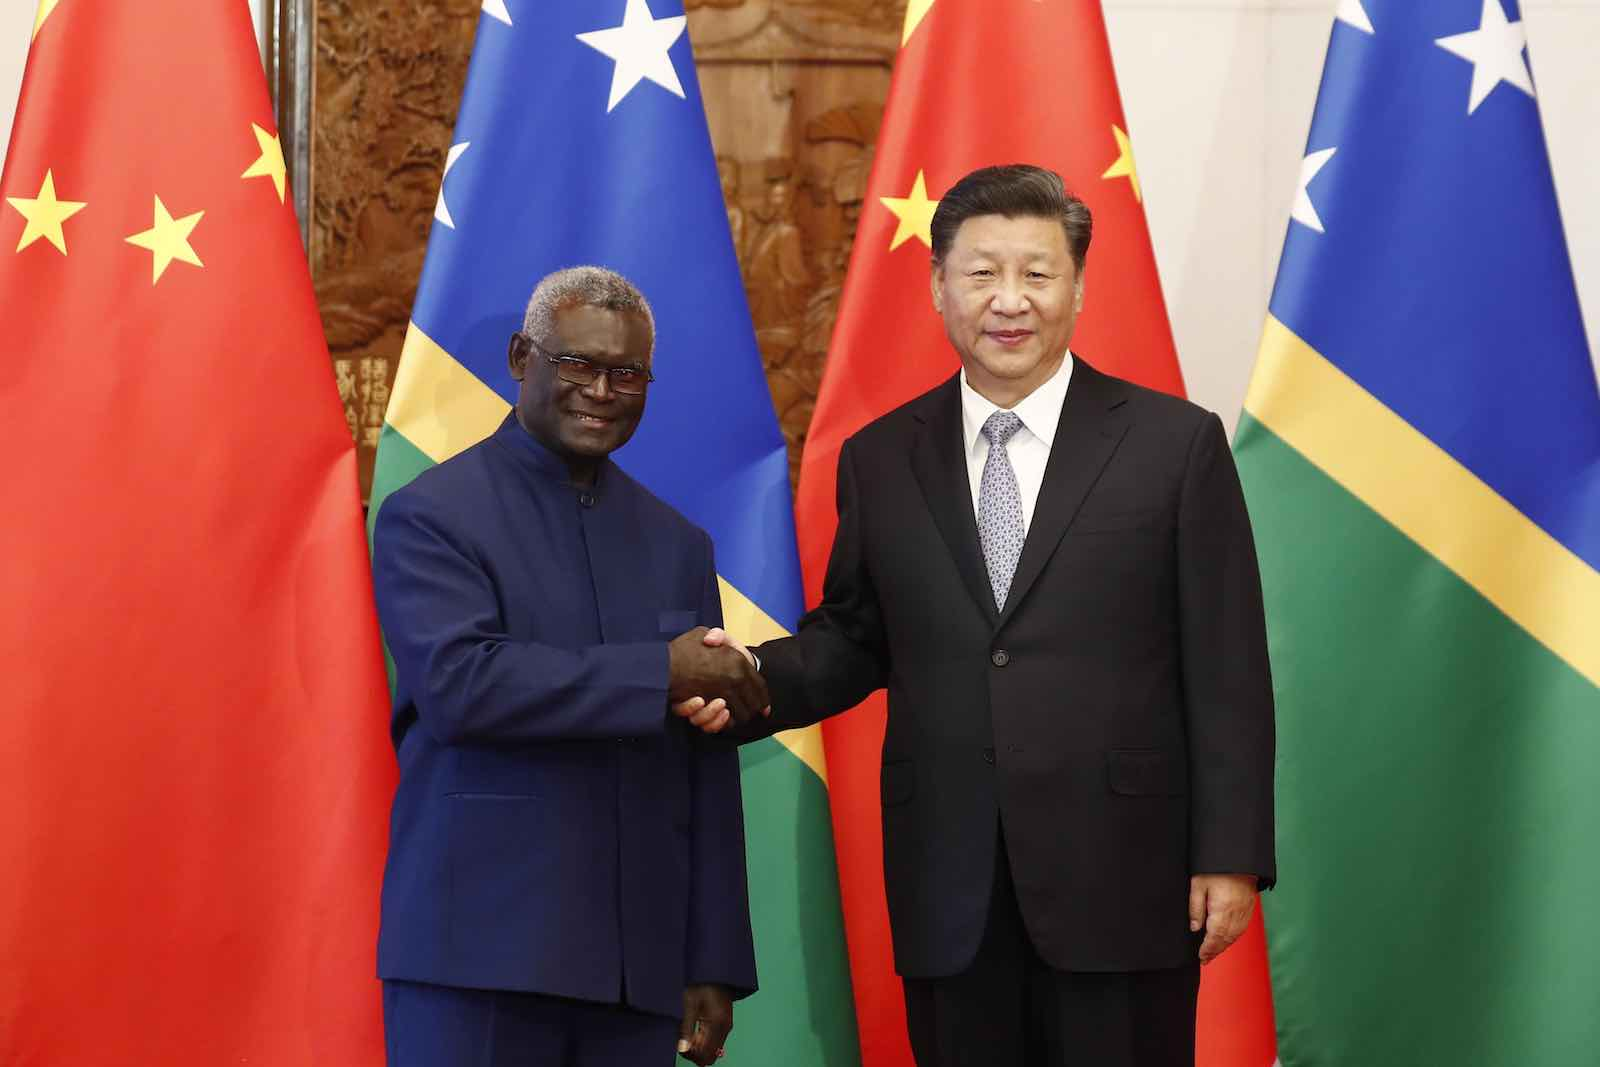 Solomon Islands' Prime Minister Manasseh Sogavare and China's Xi Jinping on 8 October in Beijing (Photo: Sheng Jiapeng/VCG/Getty Images)